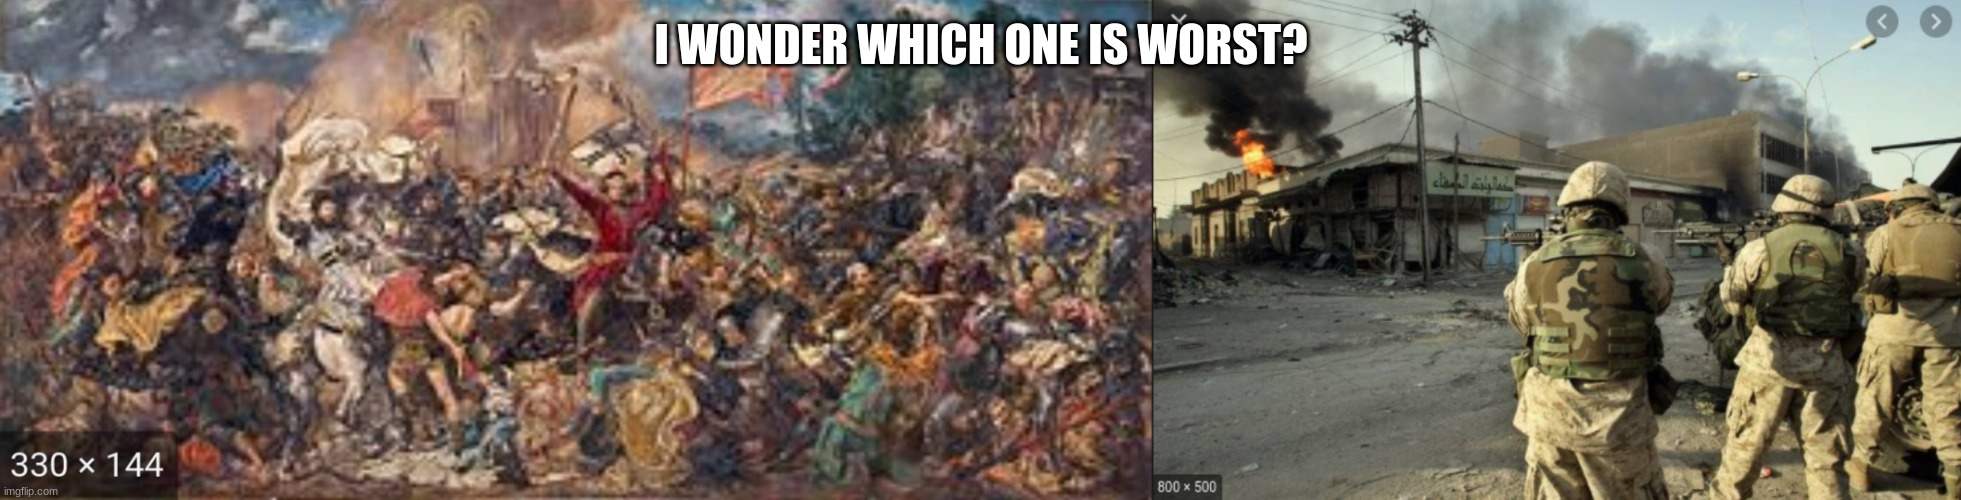 I WONDER WHICH ONE IS WORST? | image tagged in historical meme,battle | made w/ Imgflip meme maker